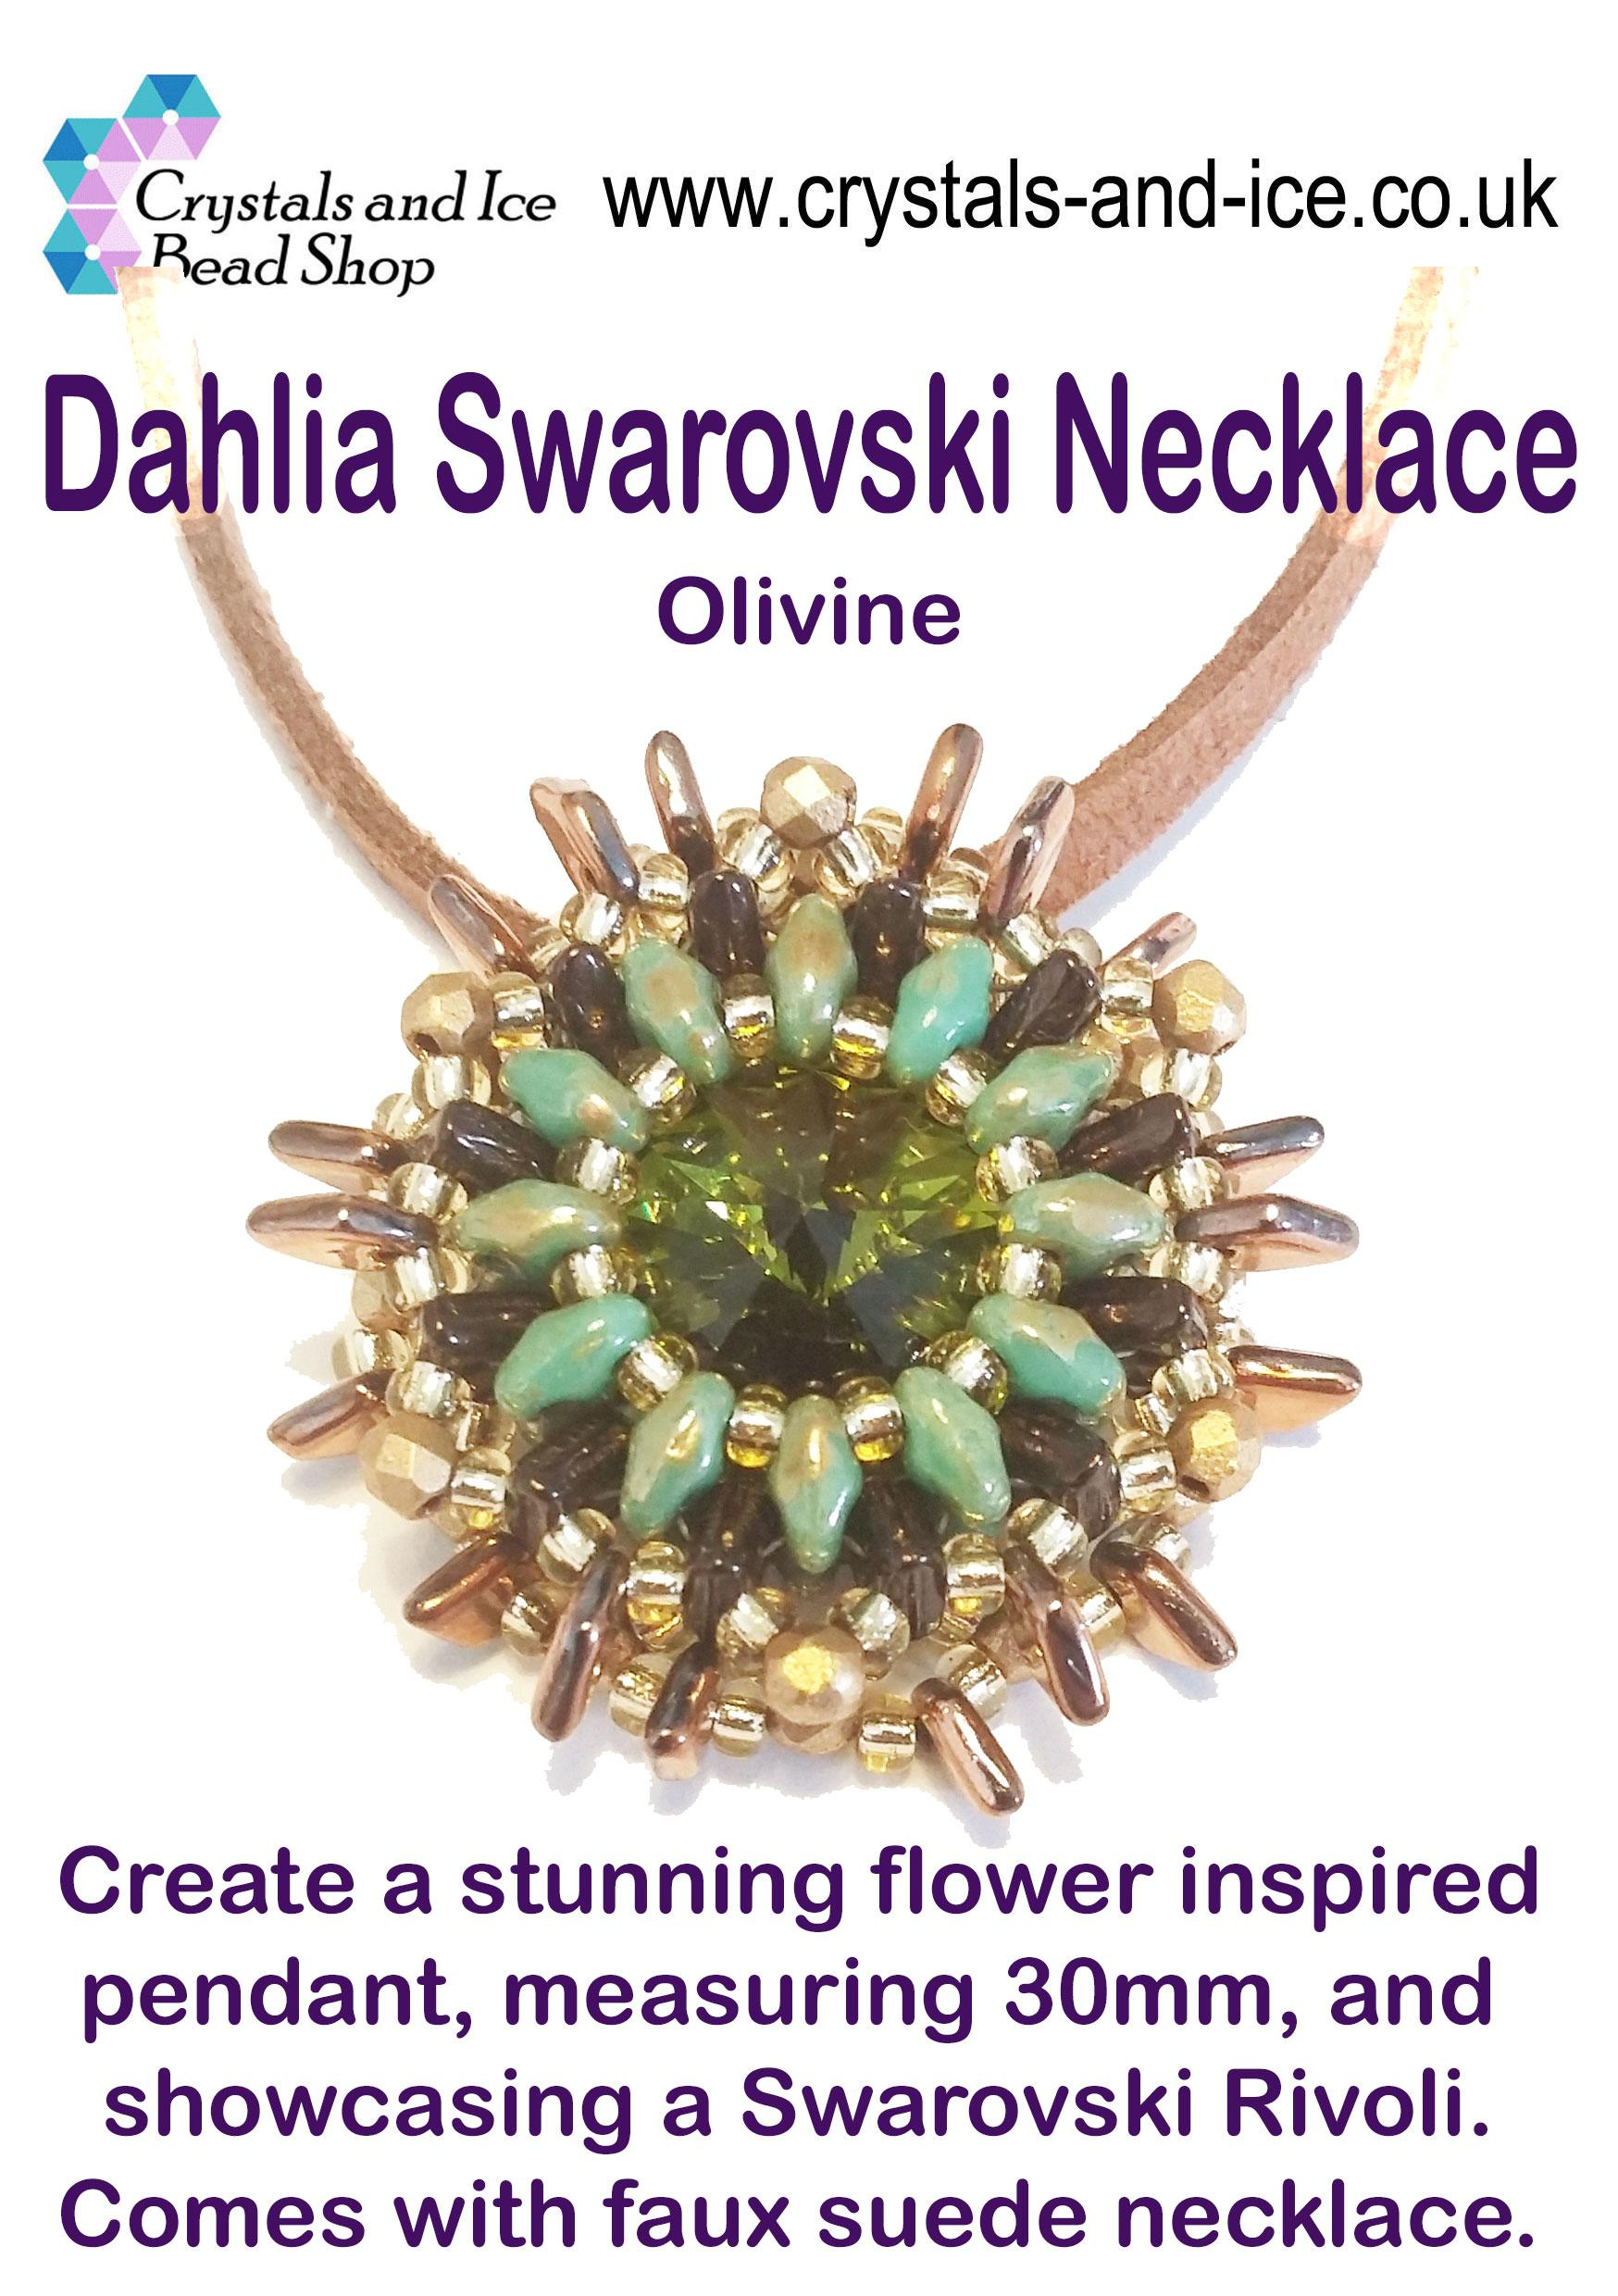 Dahlia Swarovski Necklace Kit - Olivine